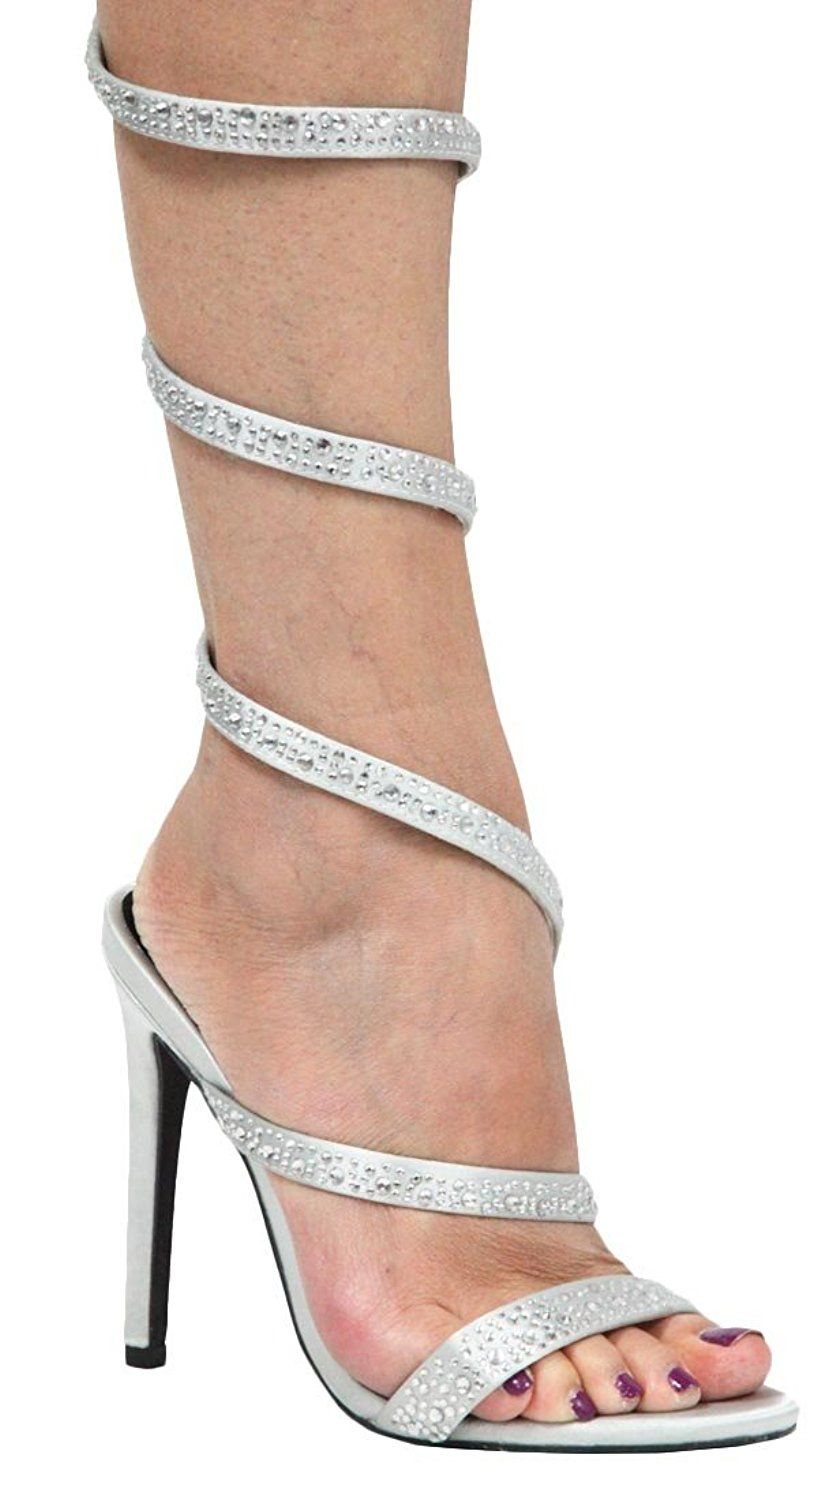 61cdbd1f418e CAPE ROBBIN Women s Coiled Spiral Wrap Around Embellished Rhinestone Heeled  Sandal   You can find more details by visiting the image link.